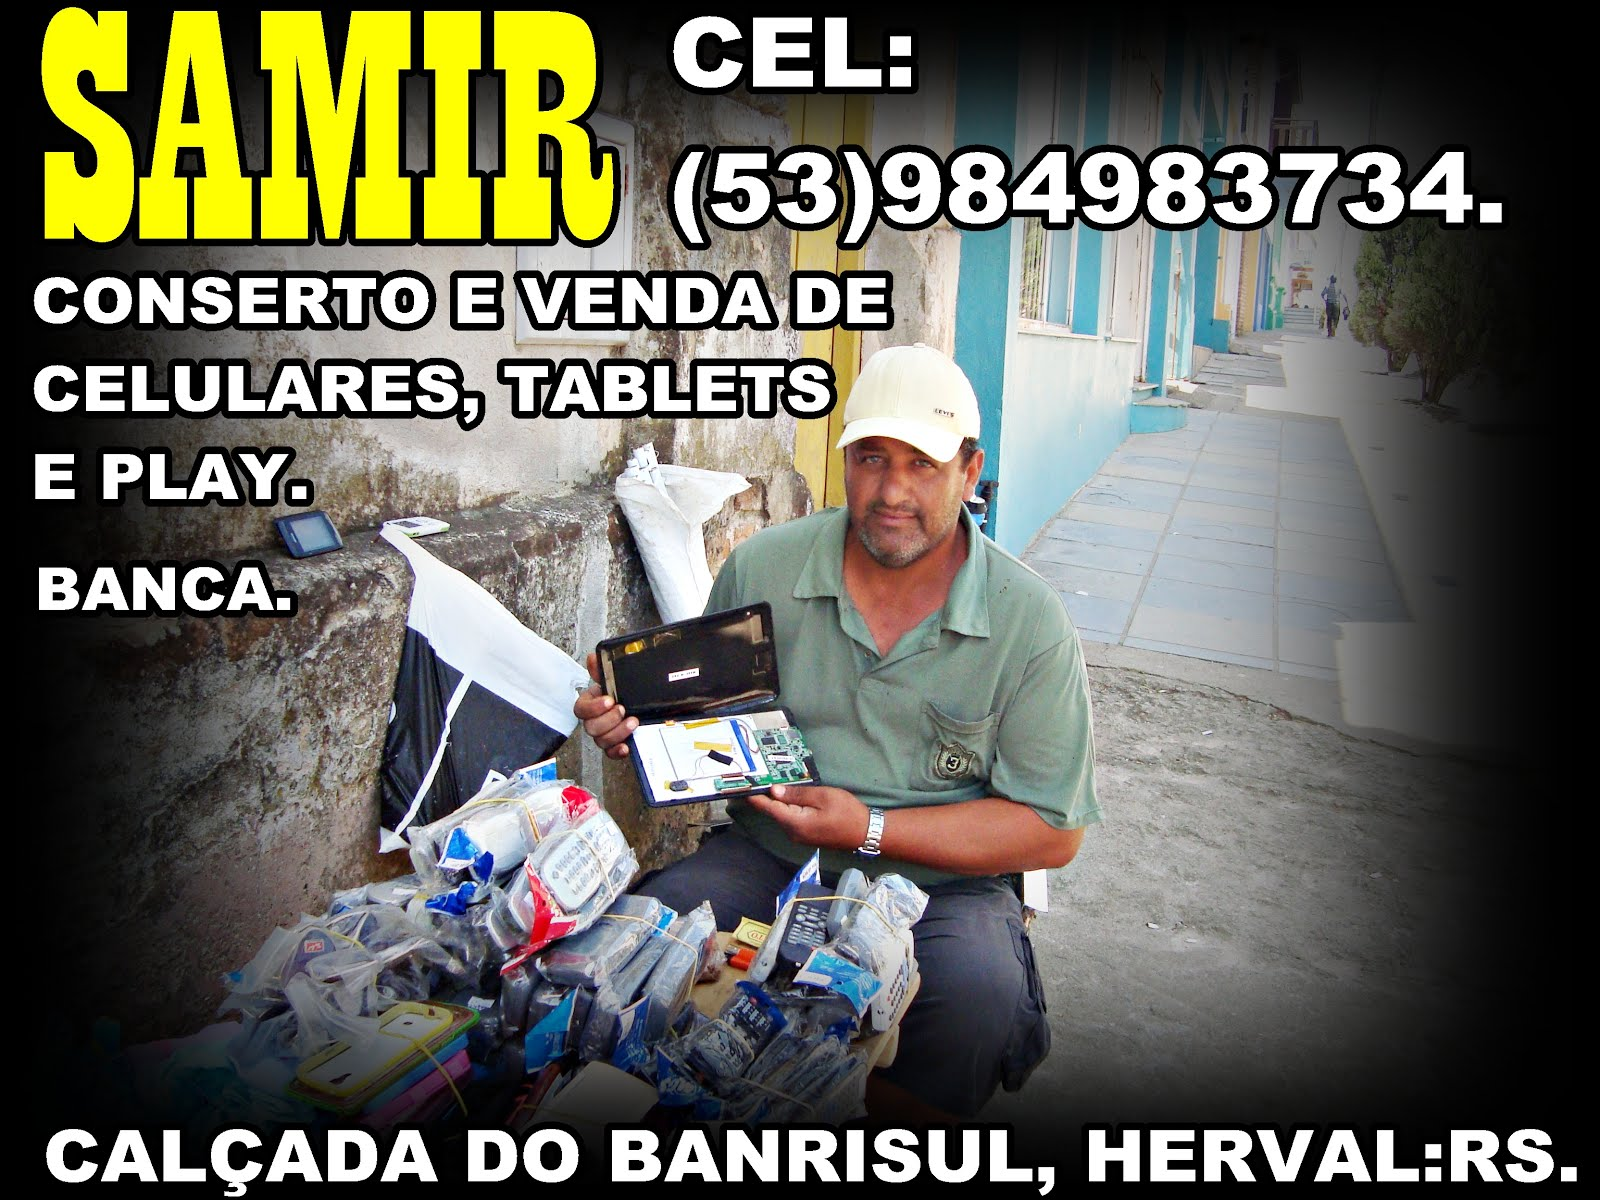 BANCA DO SAMIR.